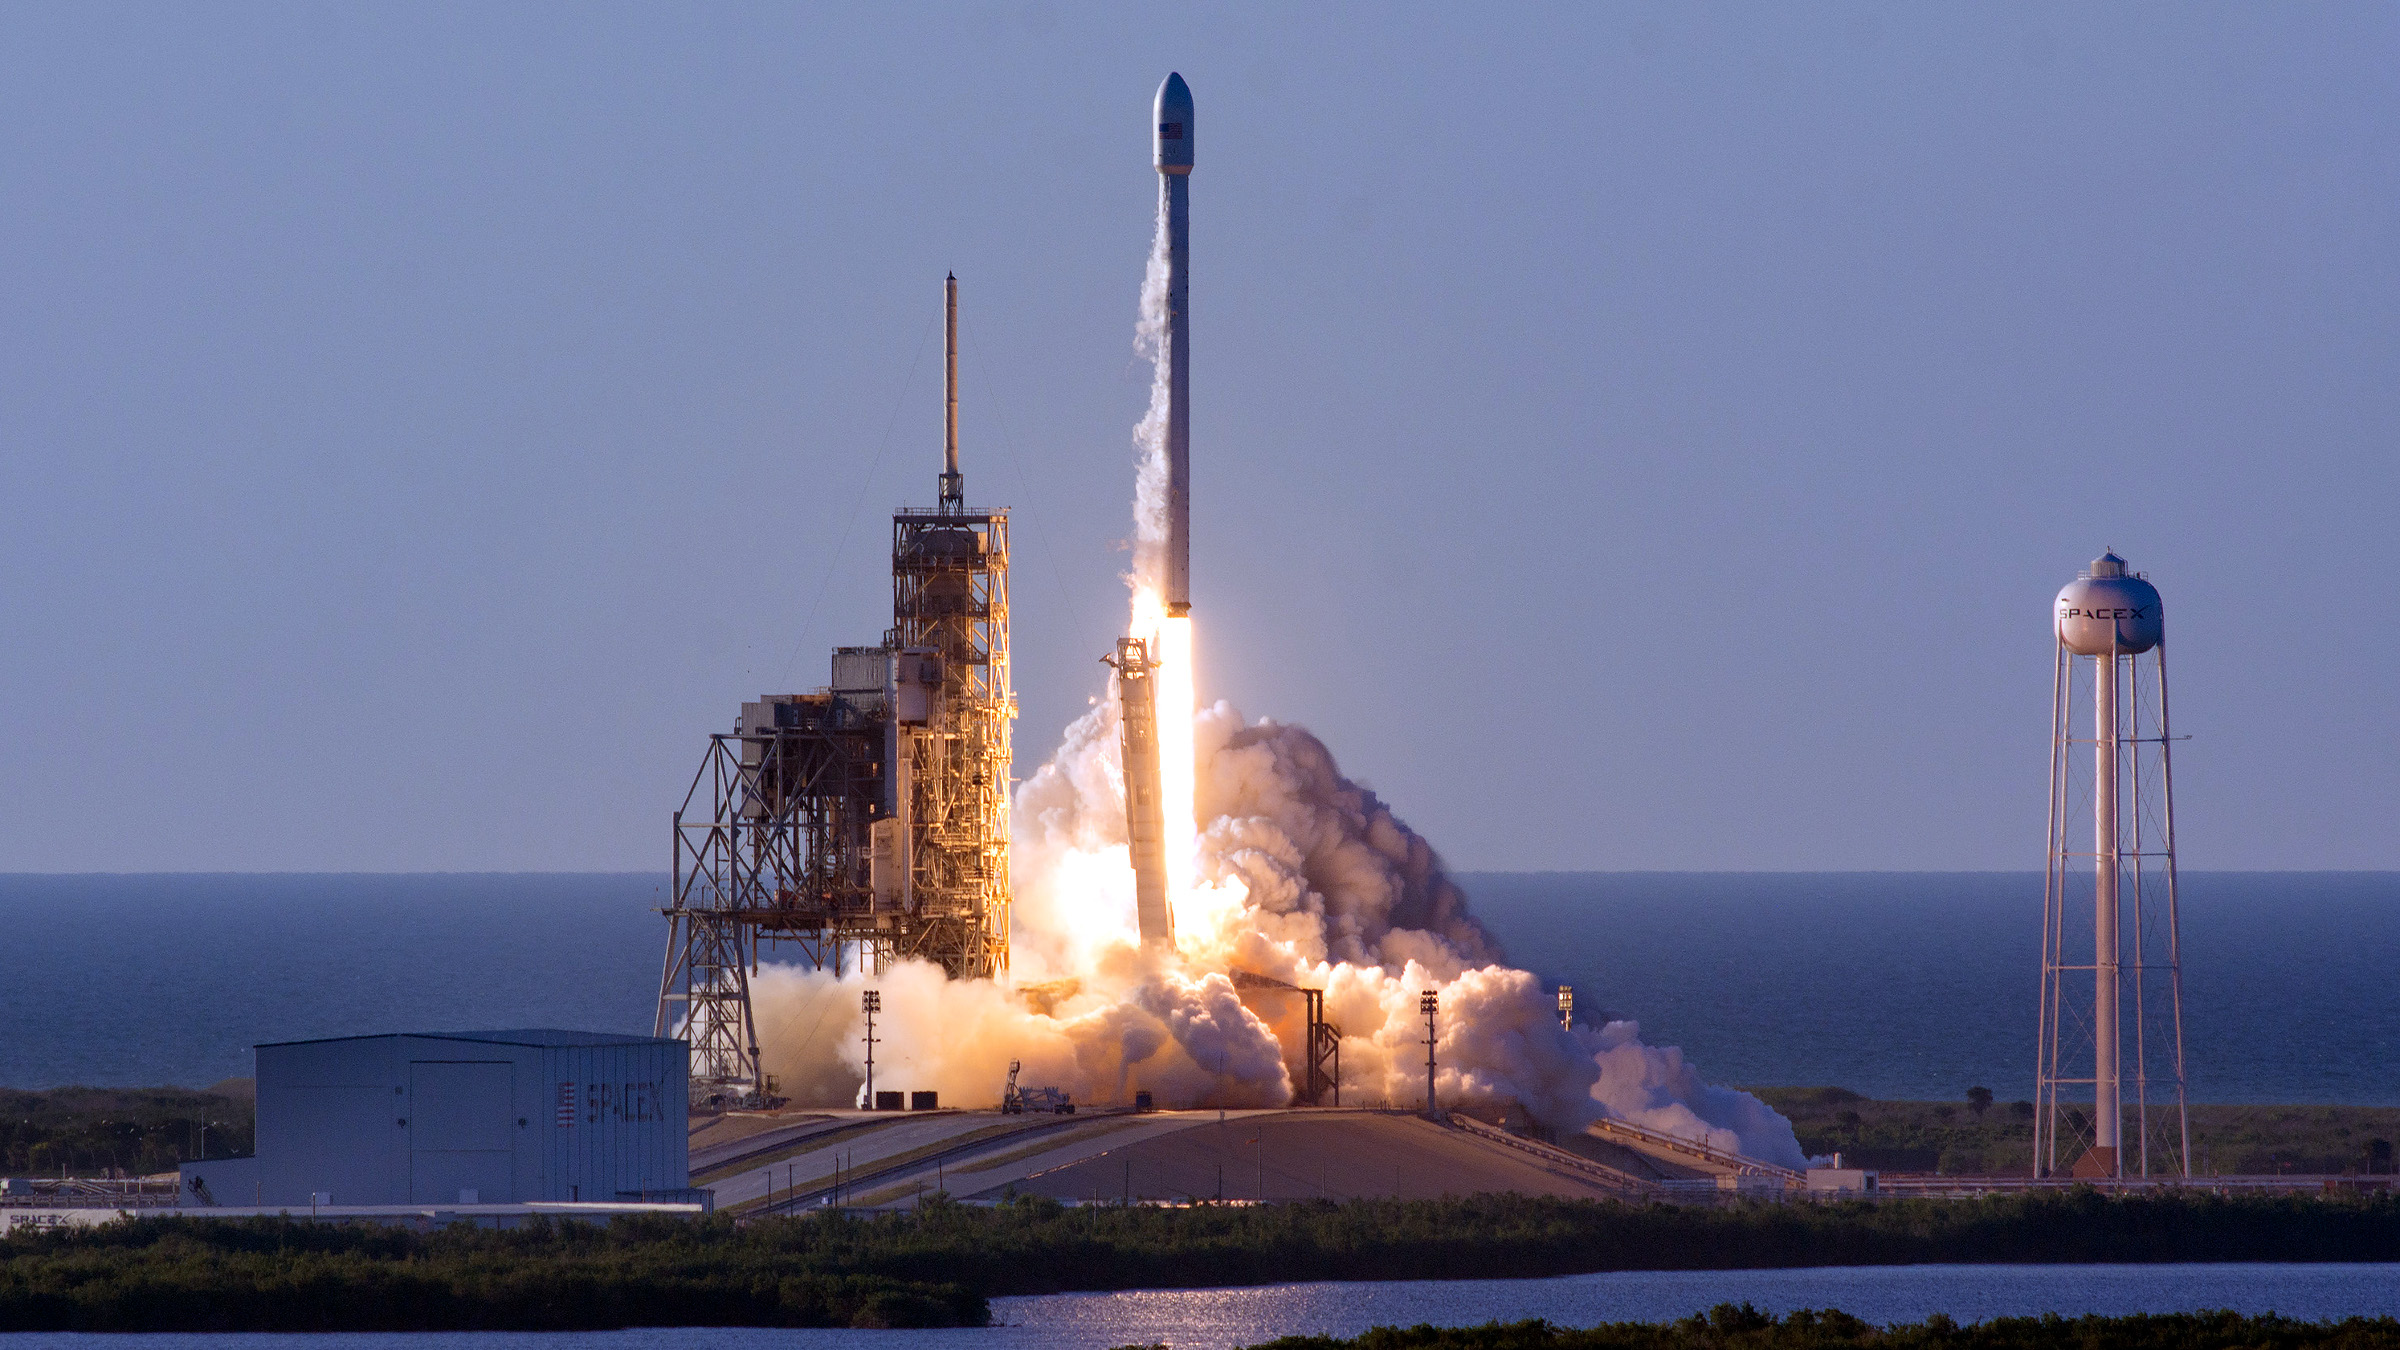 Falcon 9 Inmarsat Elon Musk SpaceX Launch